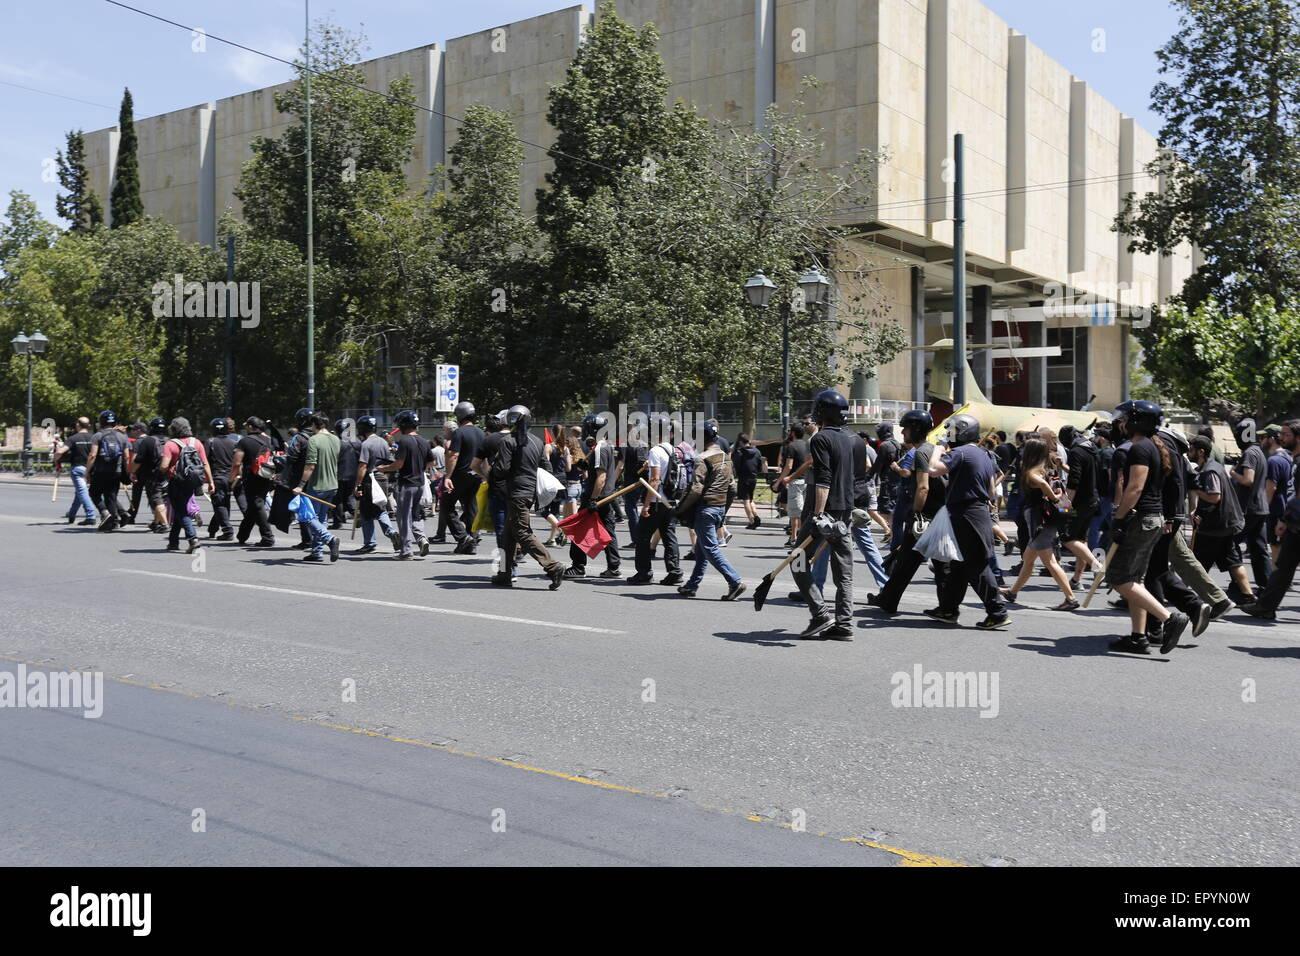 Athens, Greece. 23rd May 2015. The protesters march away from the German Embassz. A protest march by Greek anarchists - Stock Image